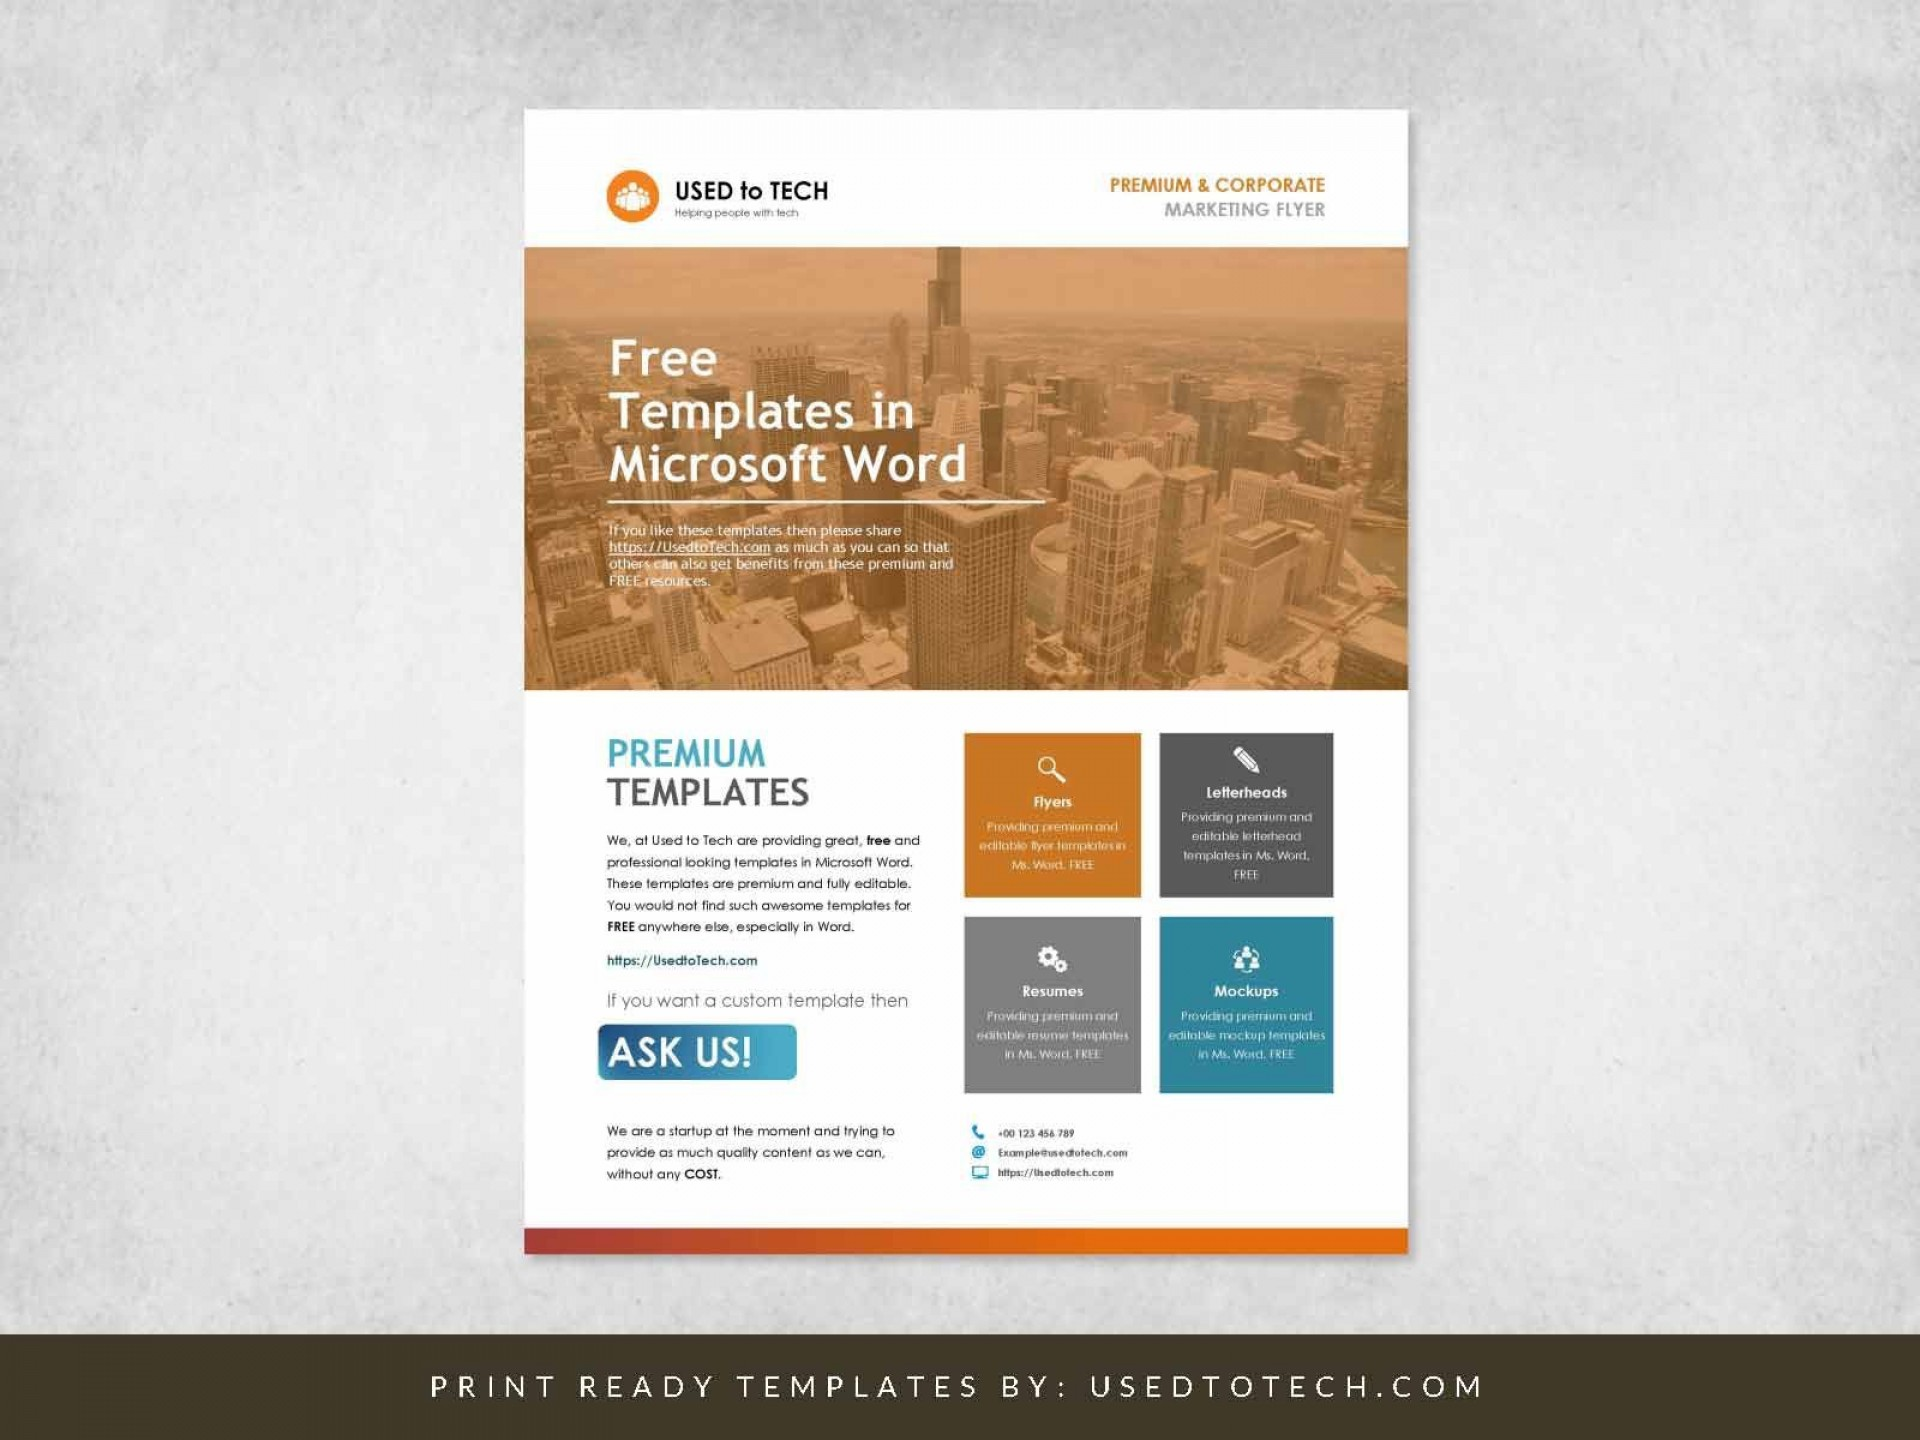 001 Beautiful Template Brochure For Microsoft Word Free Concept  Flyer Bowling Tri Fold 20101920